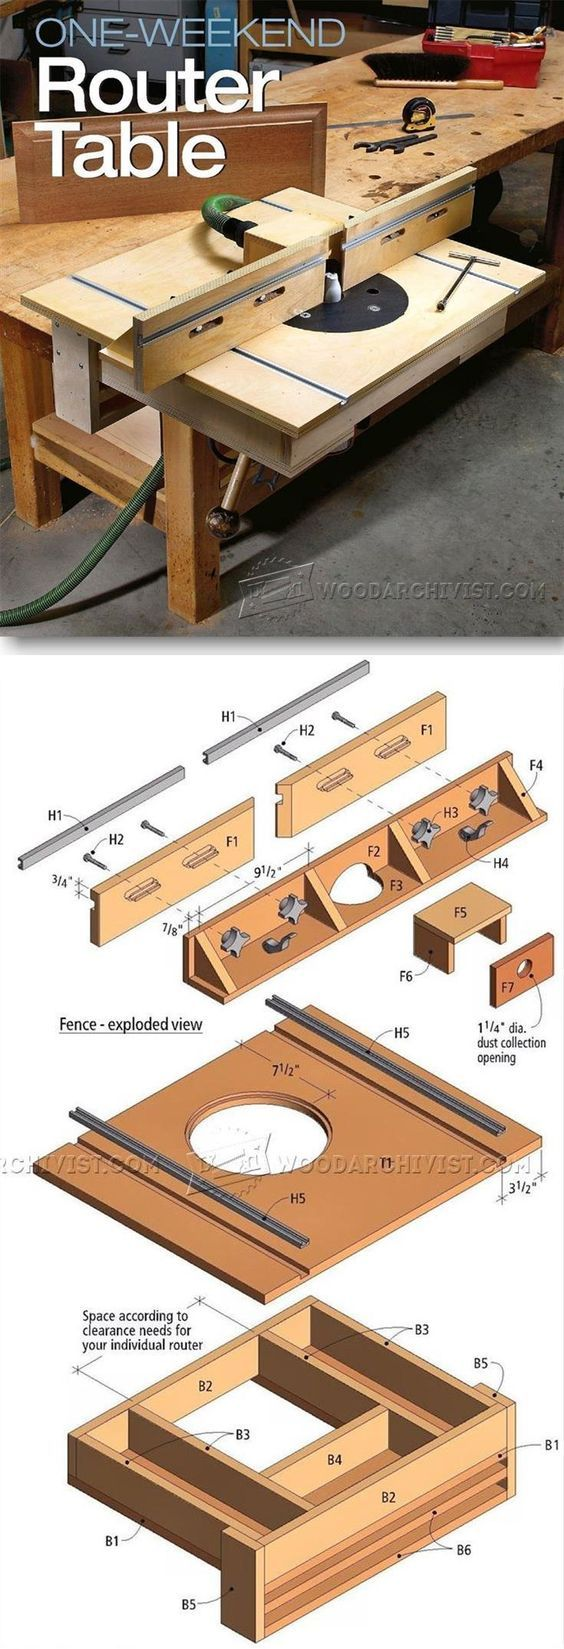 Bench-Mounted Router Table Plans - Router Tips, Jigs and Fixtures | WoodArchivist.com: